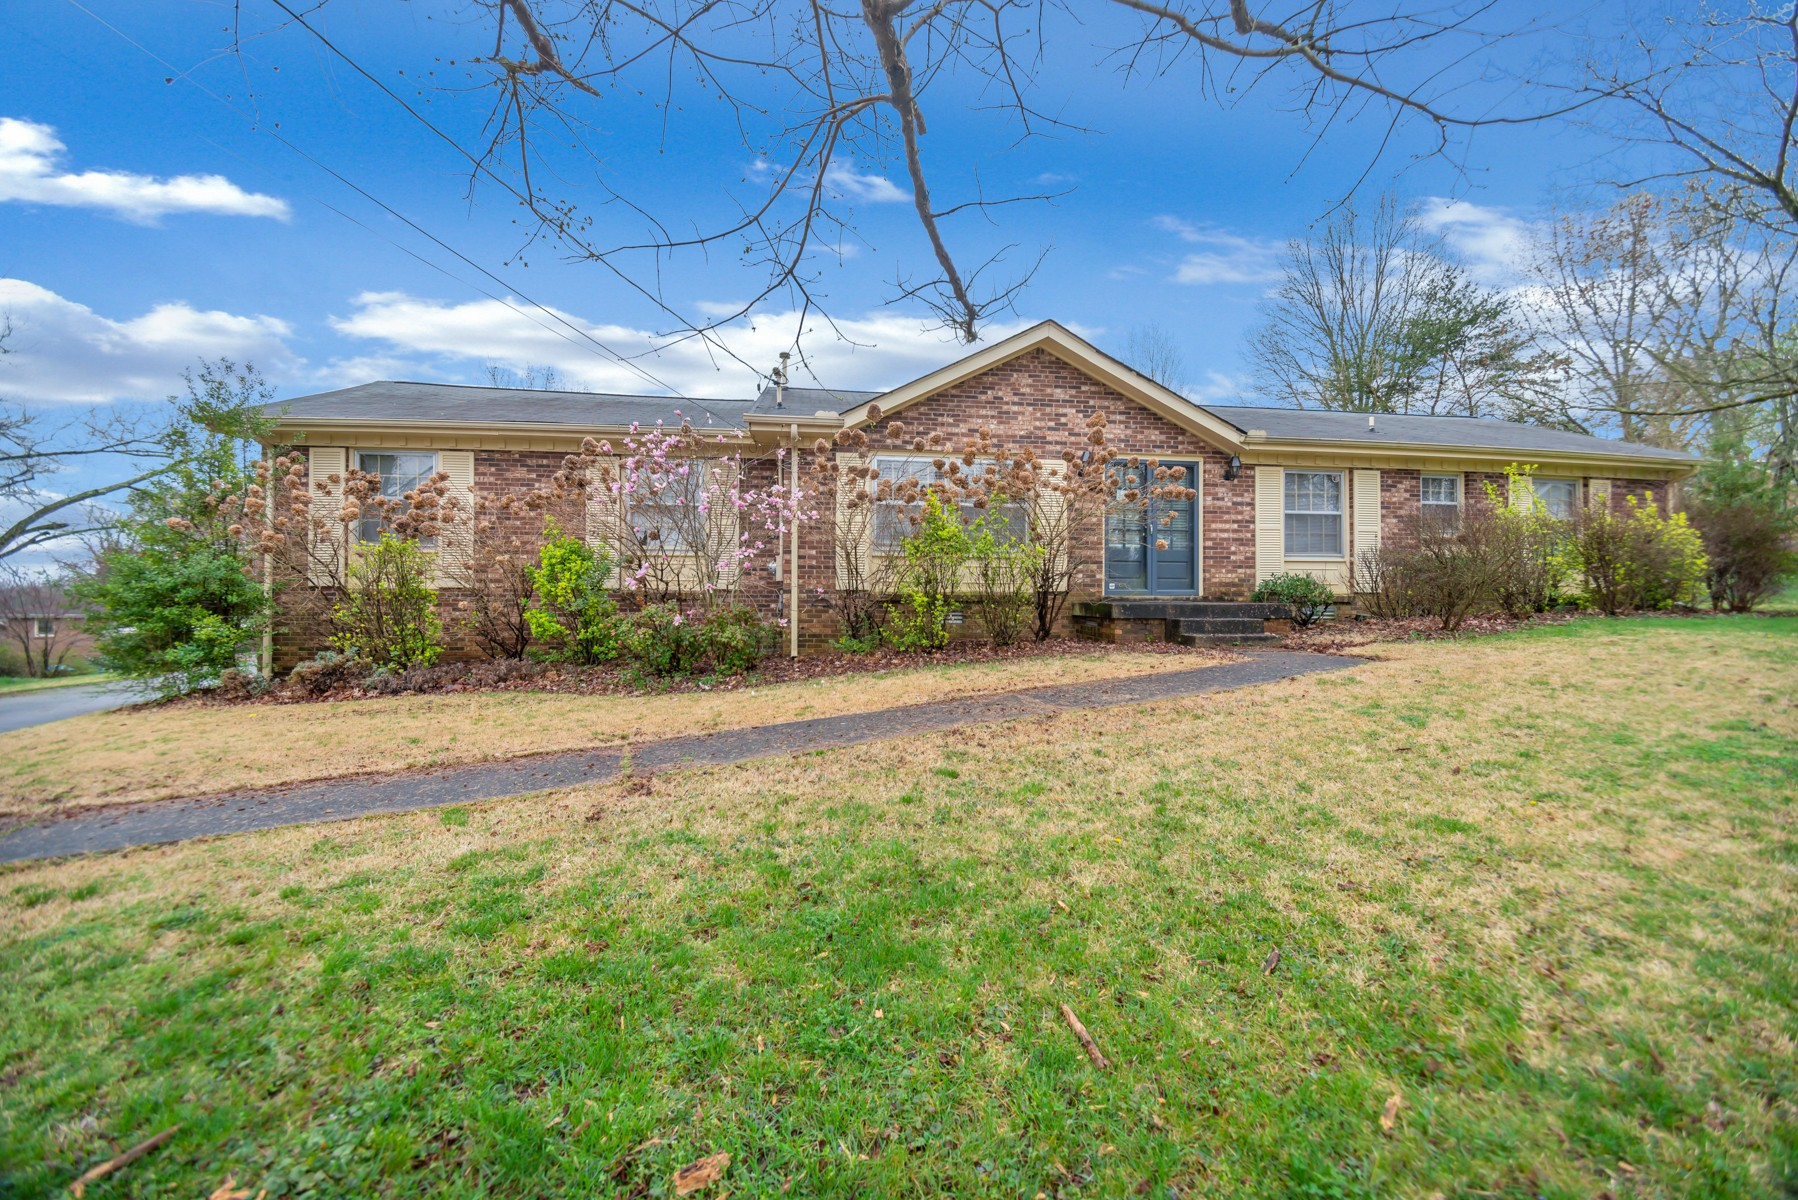 Perfect 1 Level- 3 BR, 2BA, Brick Home with Lofted Ceilings, Original Hardwoods, Open FloorPlan with Extra Large 2 car Garage &Concrete Driveway.  Large Fenced in Backyard & Home is on a Cul De Sac.  Close to 386!